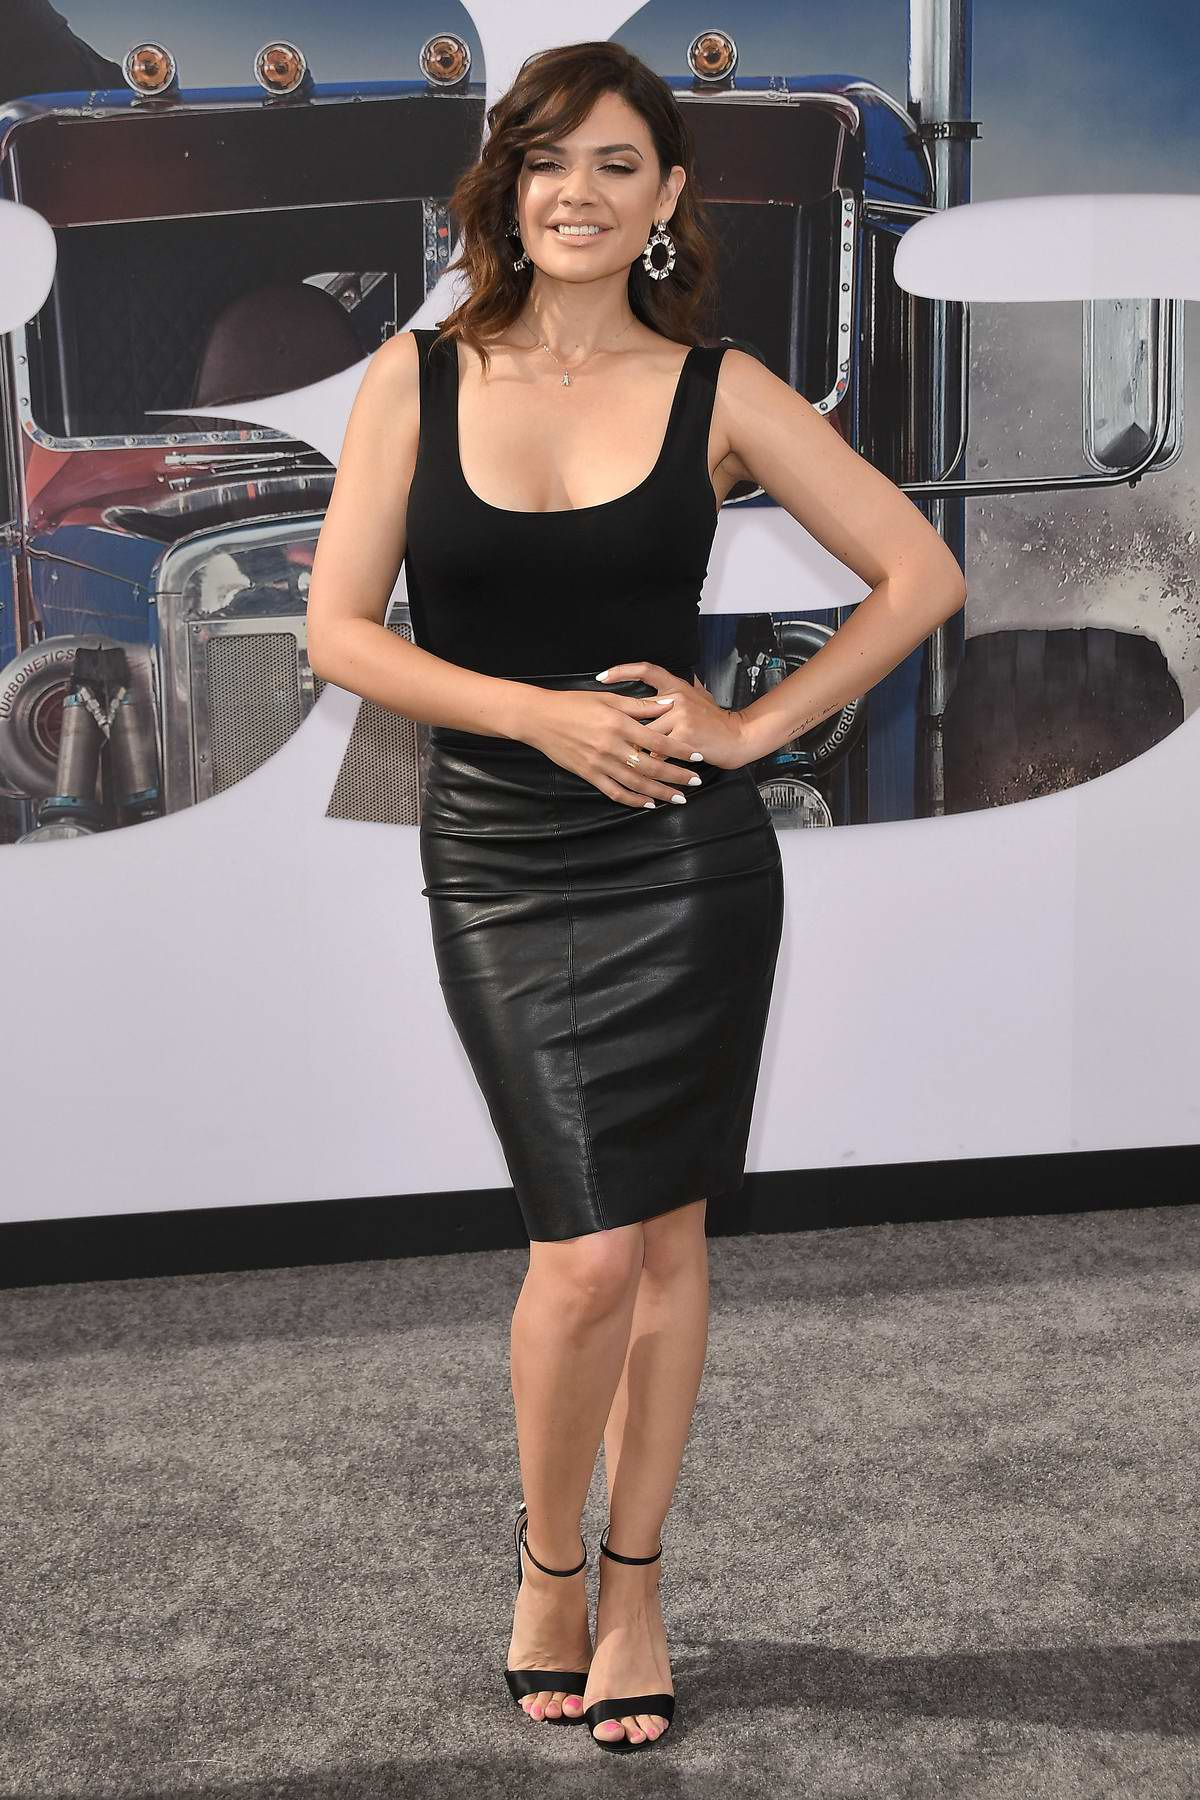 Angelica Celaya attends the Premiere of 'Fast & Furious Presents: Hobbs & Shaw' at Dolby Theatre in Hollywood, California